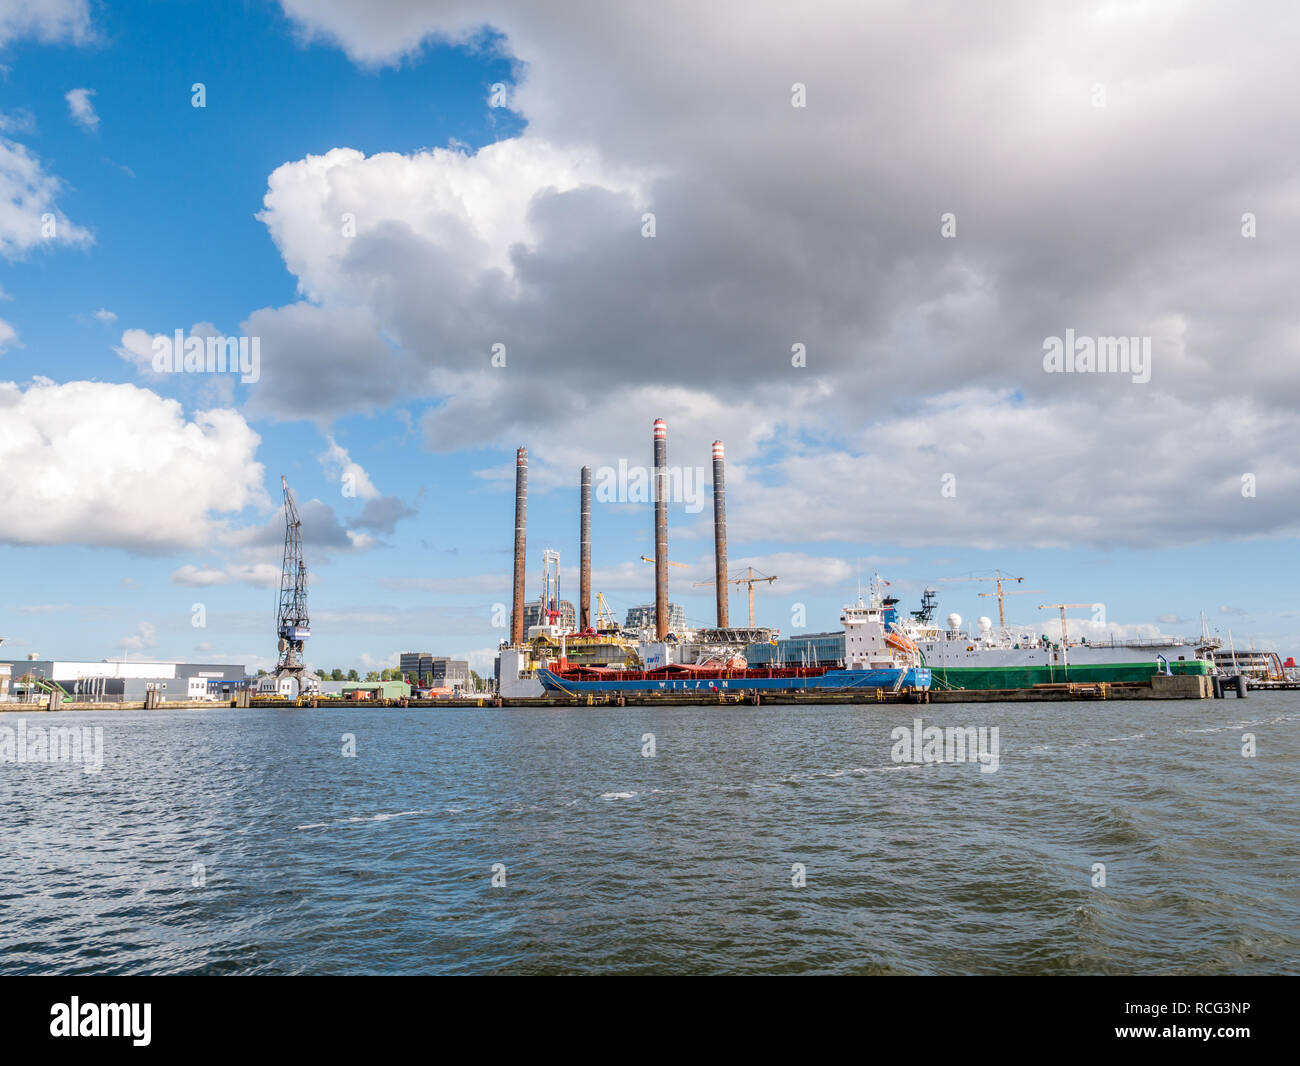 Ships docked in shipyard near NDSM wharf on northern bank of IJ river in Amsterdam, Netherlands Stock Photo